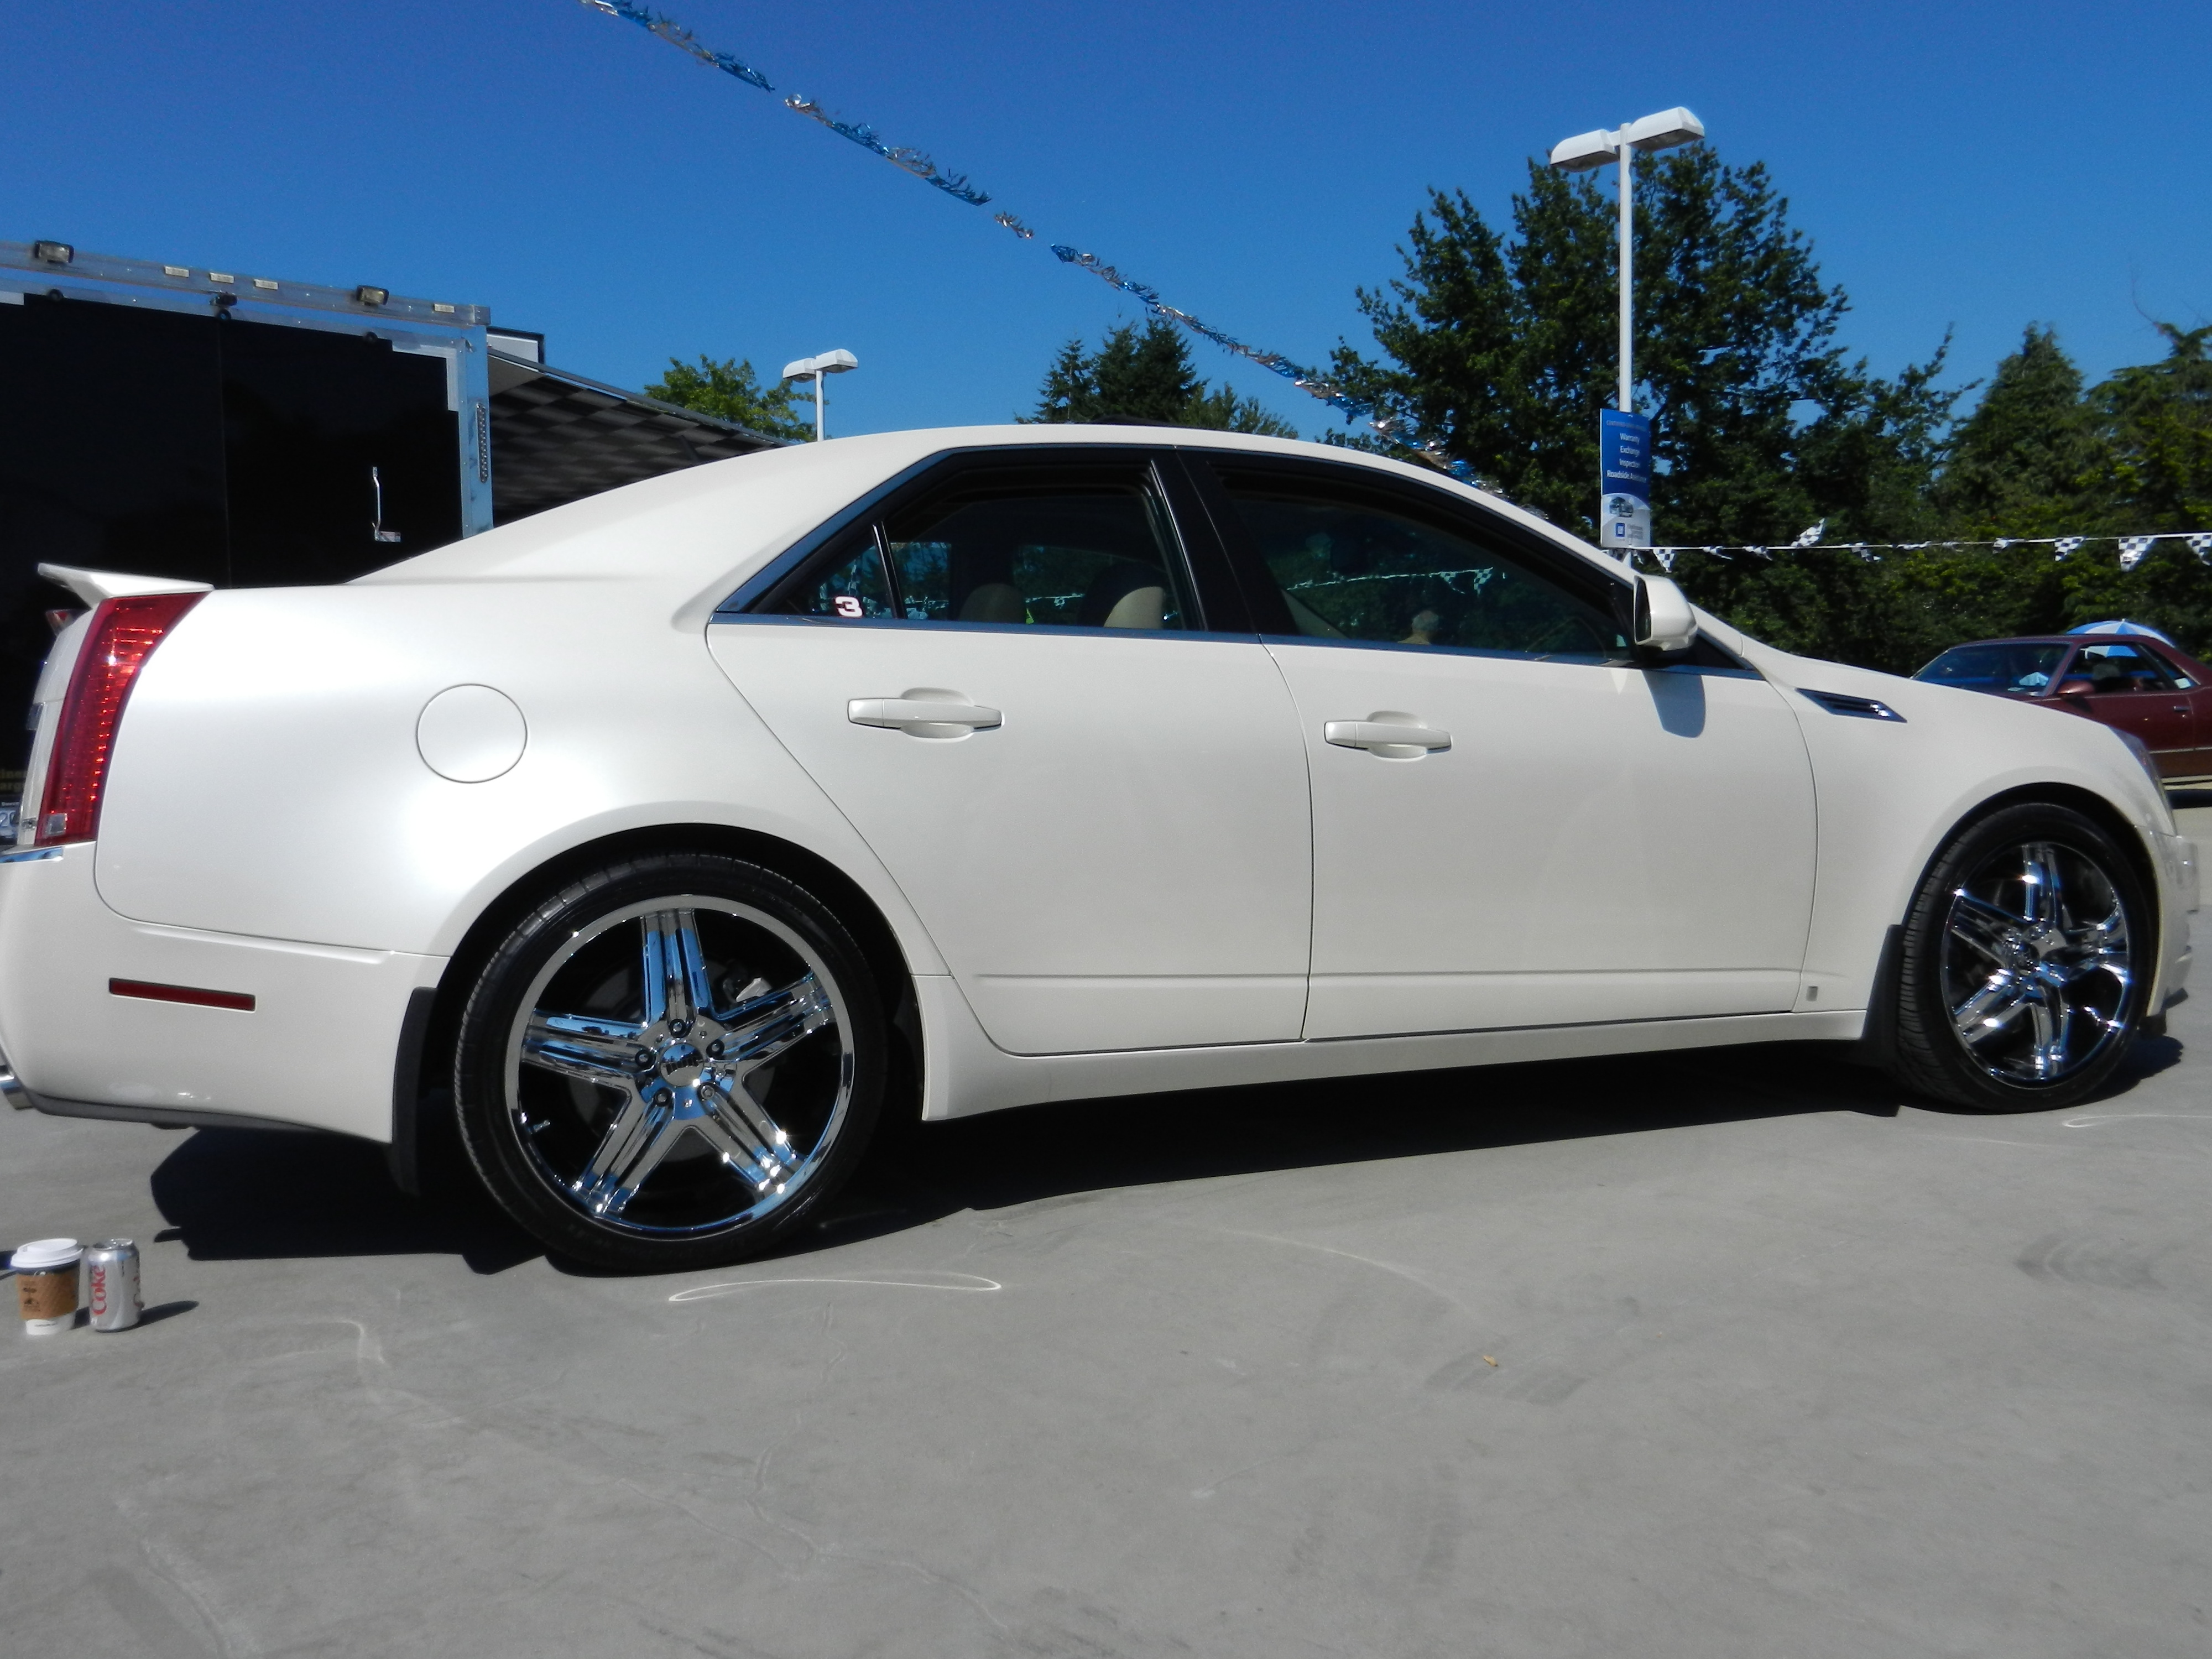 Camaro 20 Inch Winter Tires D New Cadillac Ct Show Shine Aug